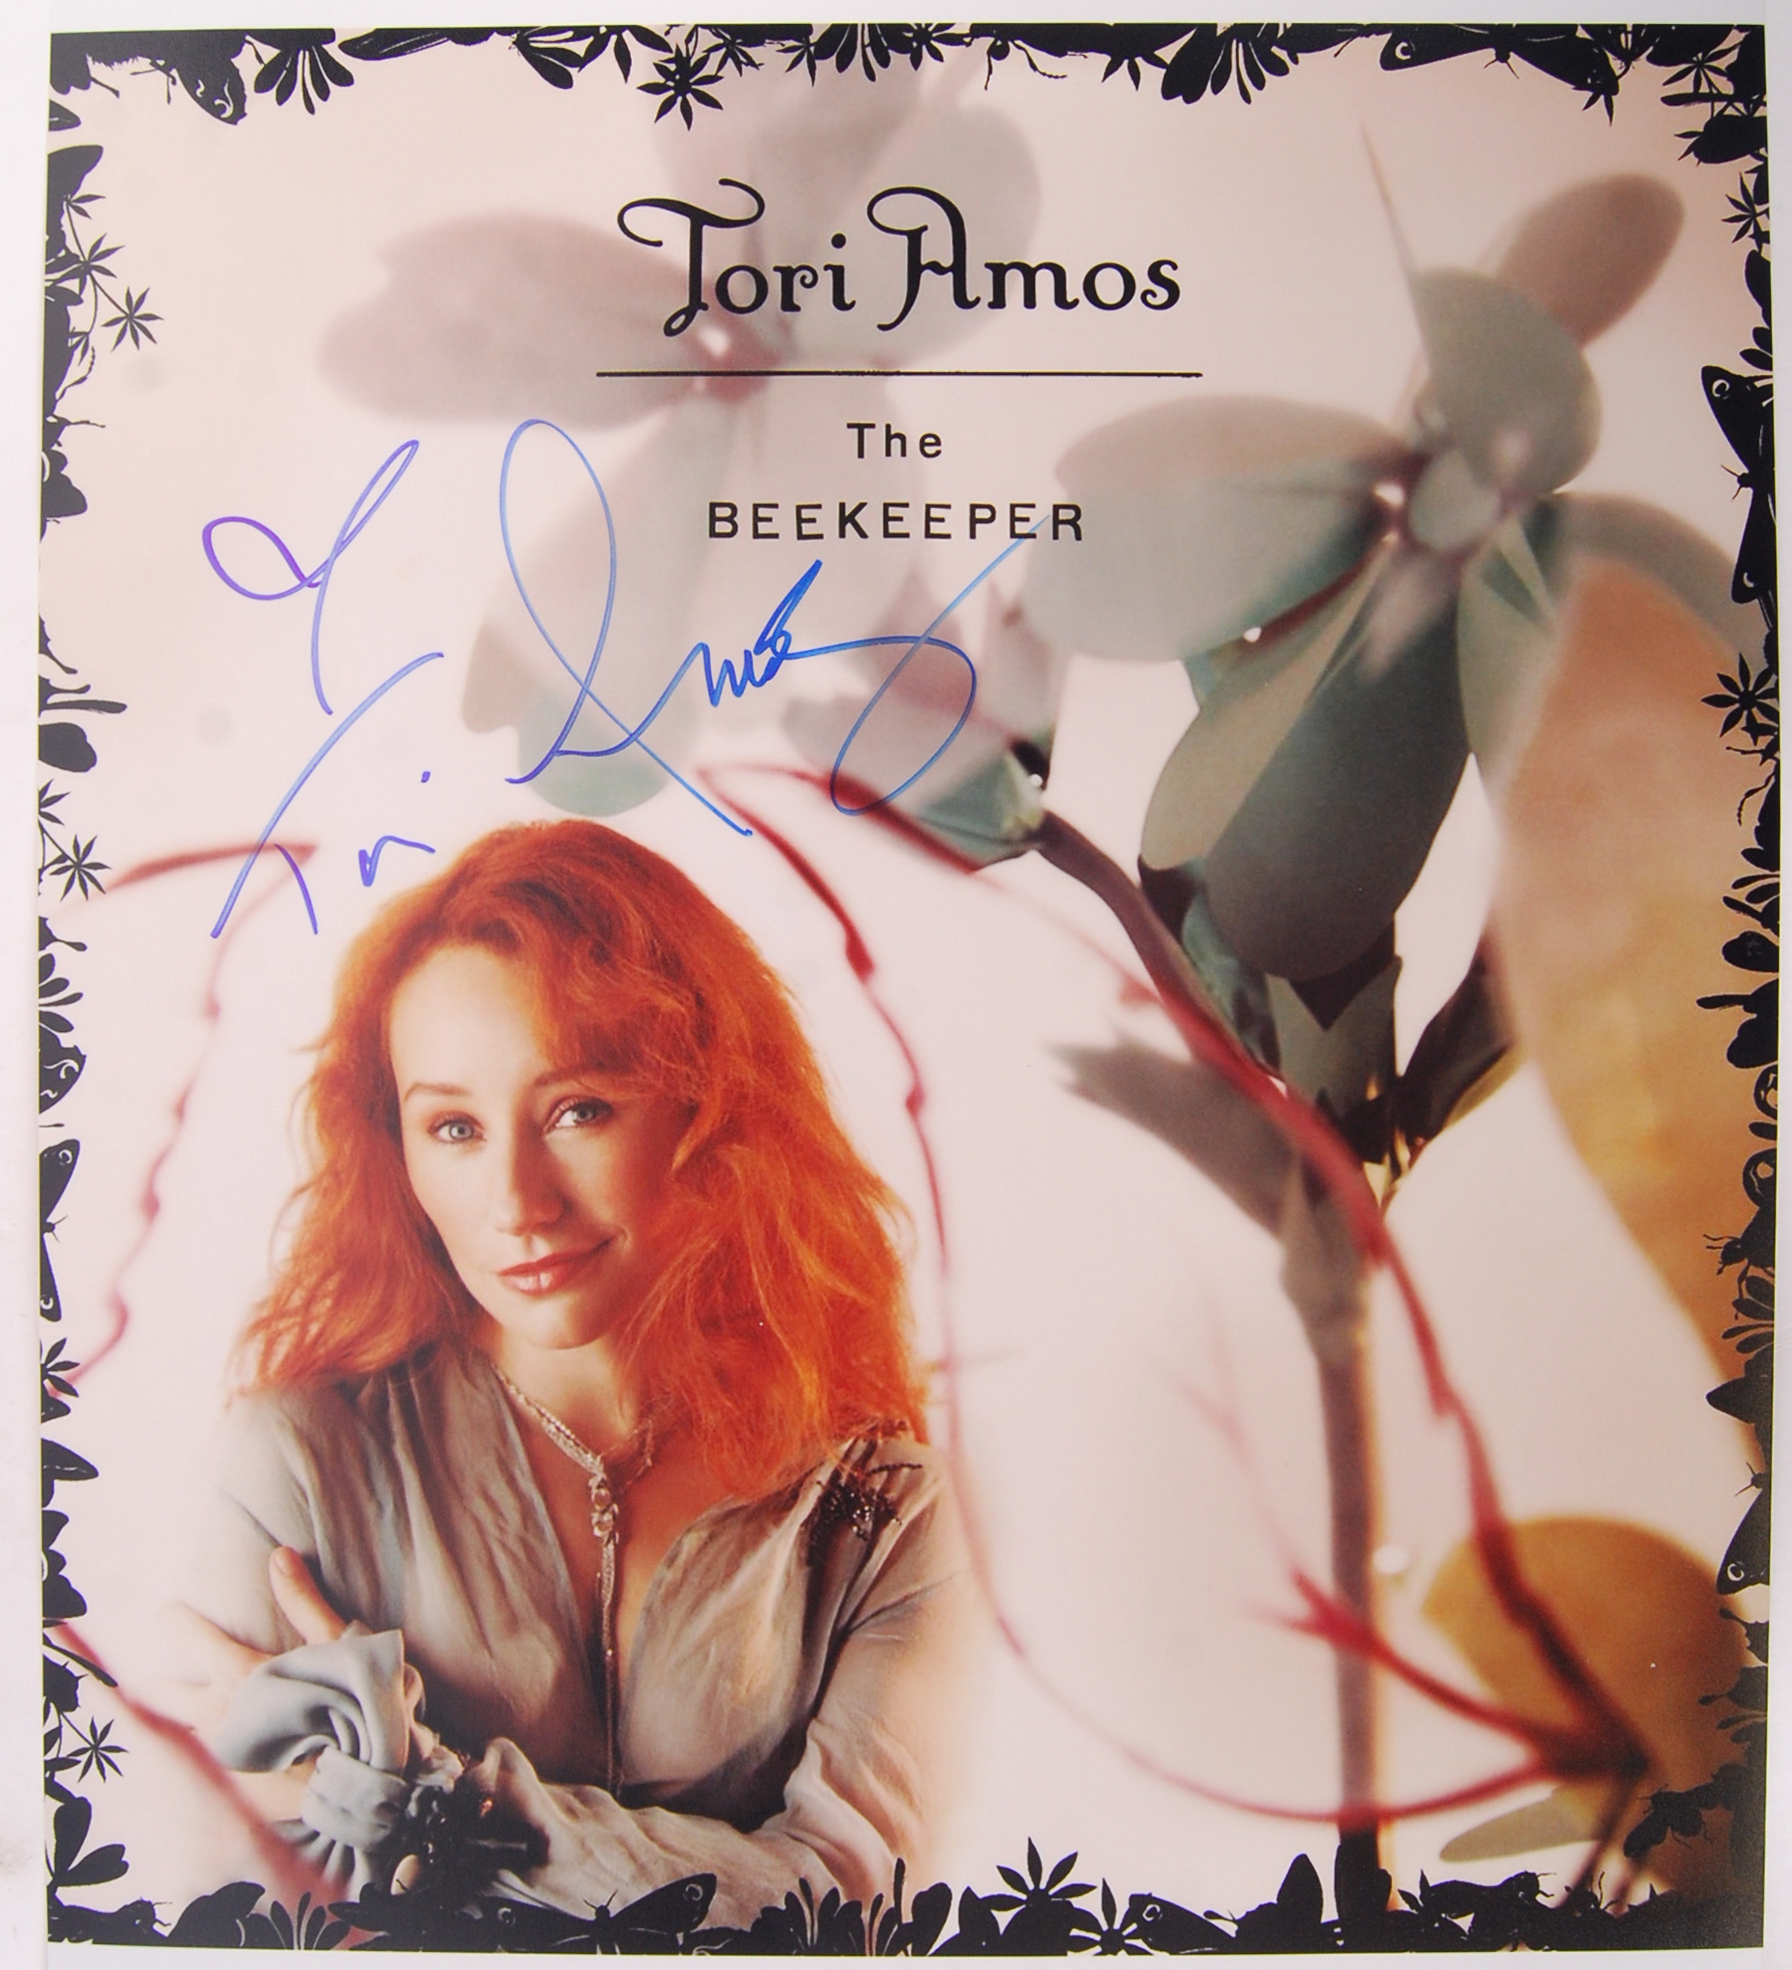 Lot 79 - TORI AMOS - THE BEEKEEPER - RARE SIGNED PHOTOGRAPH